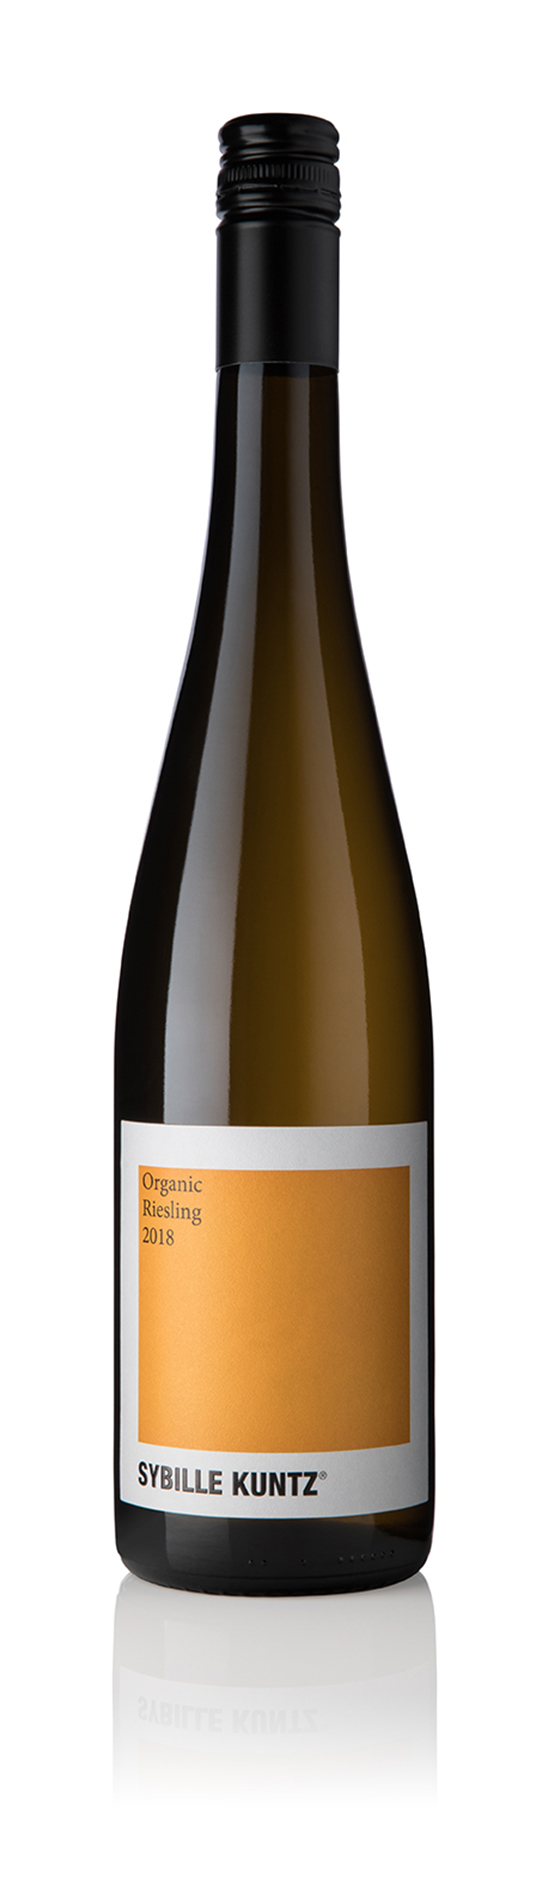 2019 SYBILLE KUNTZ Mosel-Riesling Organic Riesling 0,75 l